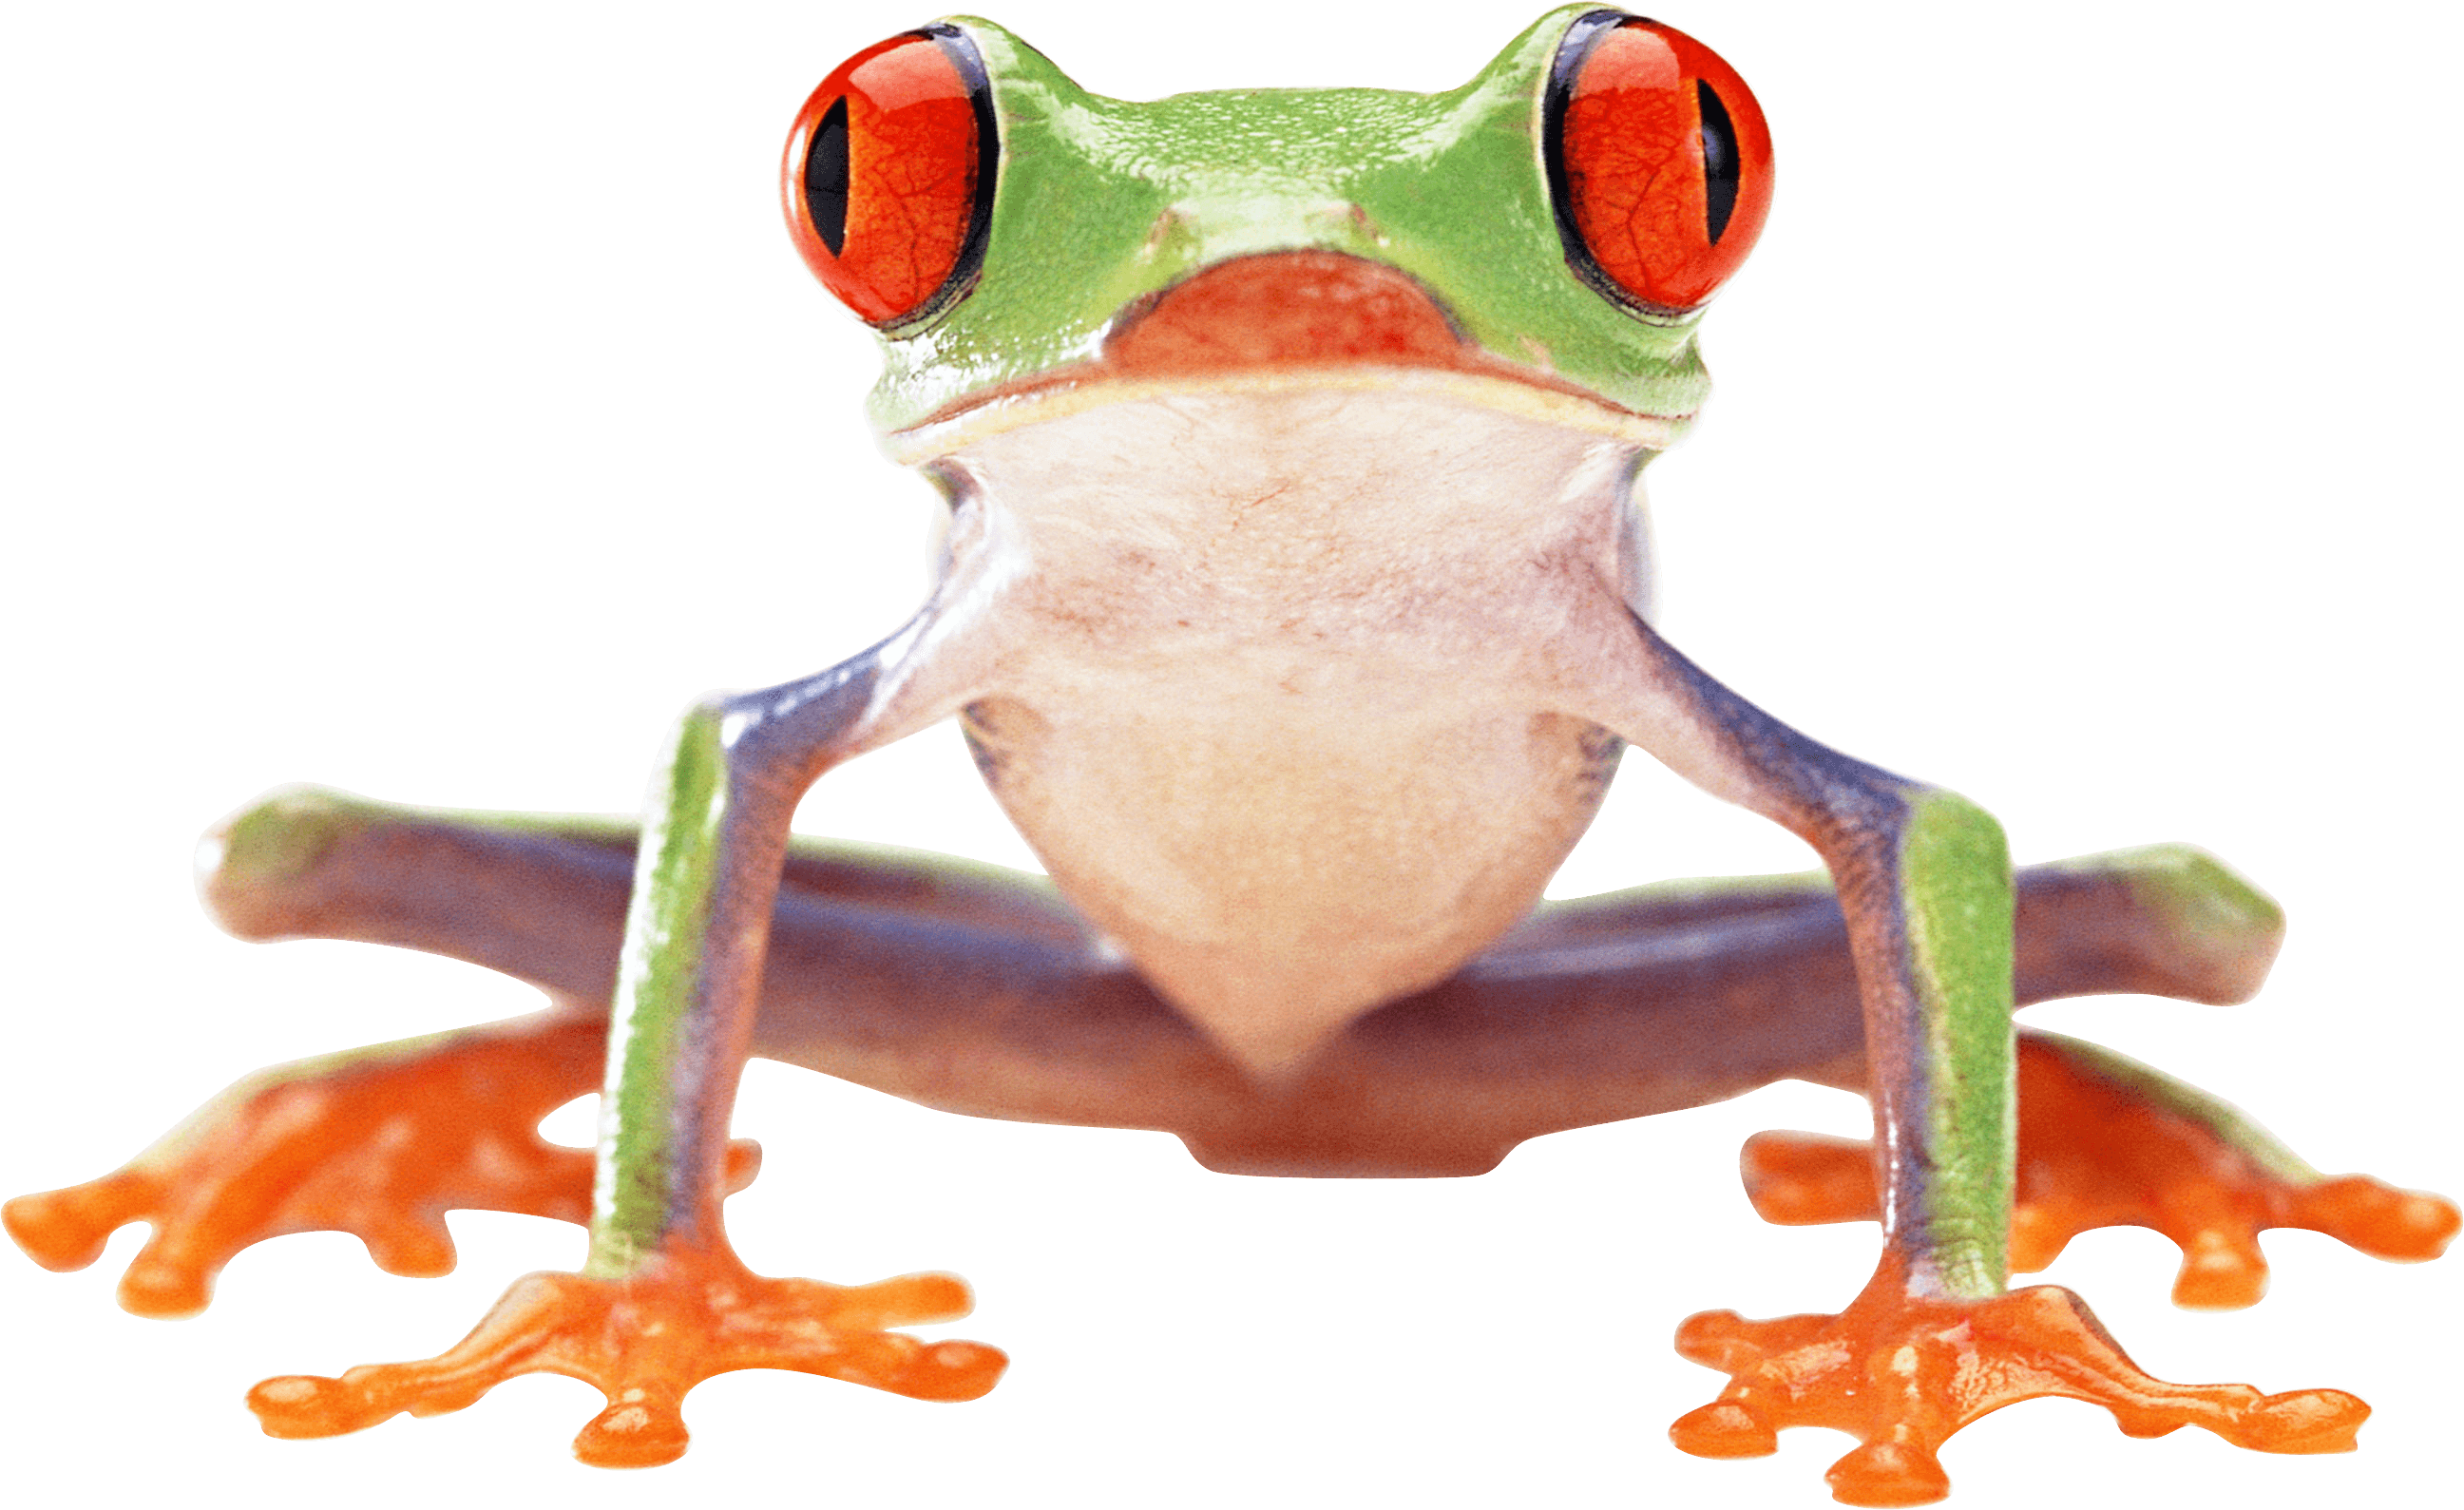 Wednesday frog png. Crazy green image purepng